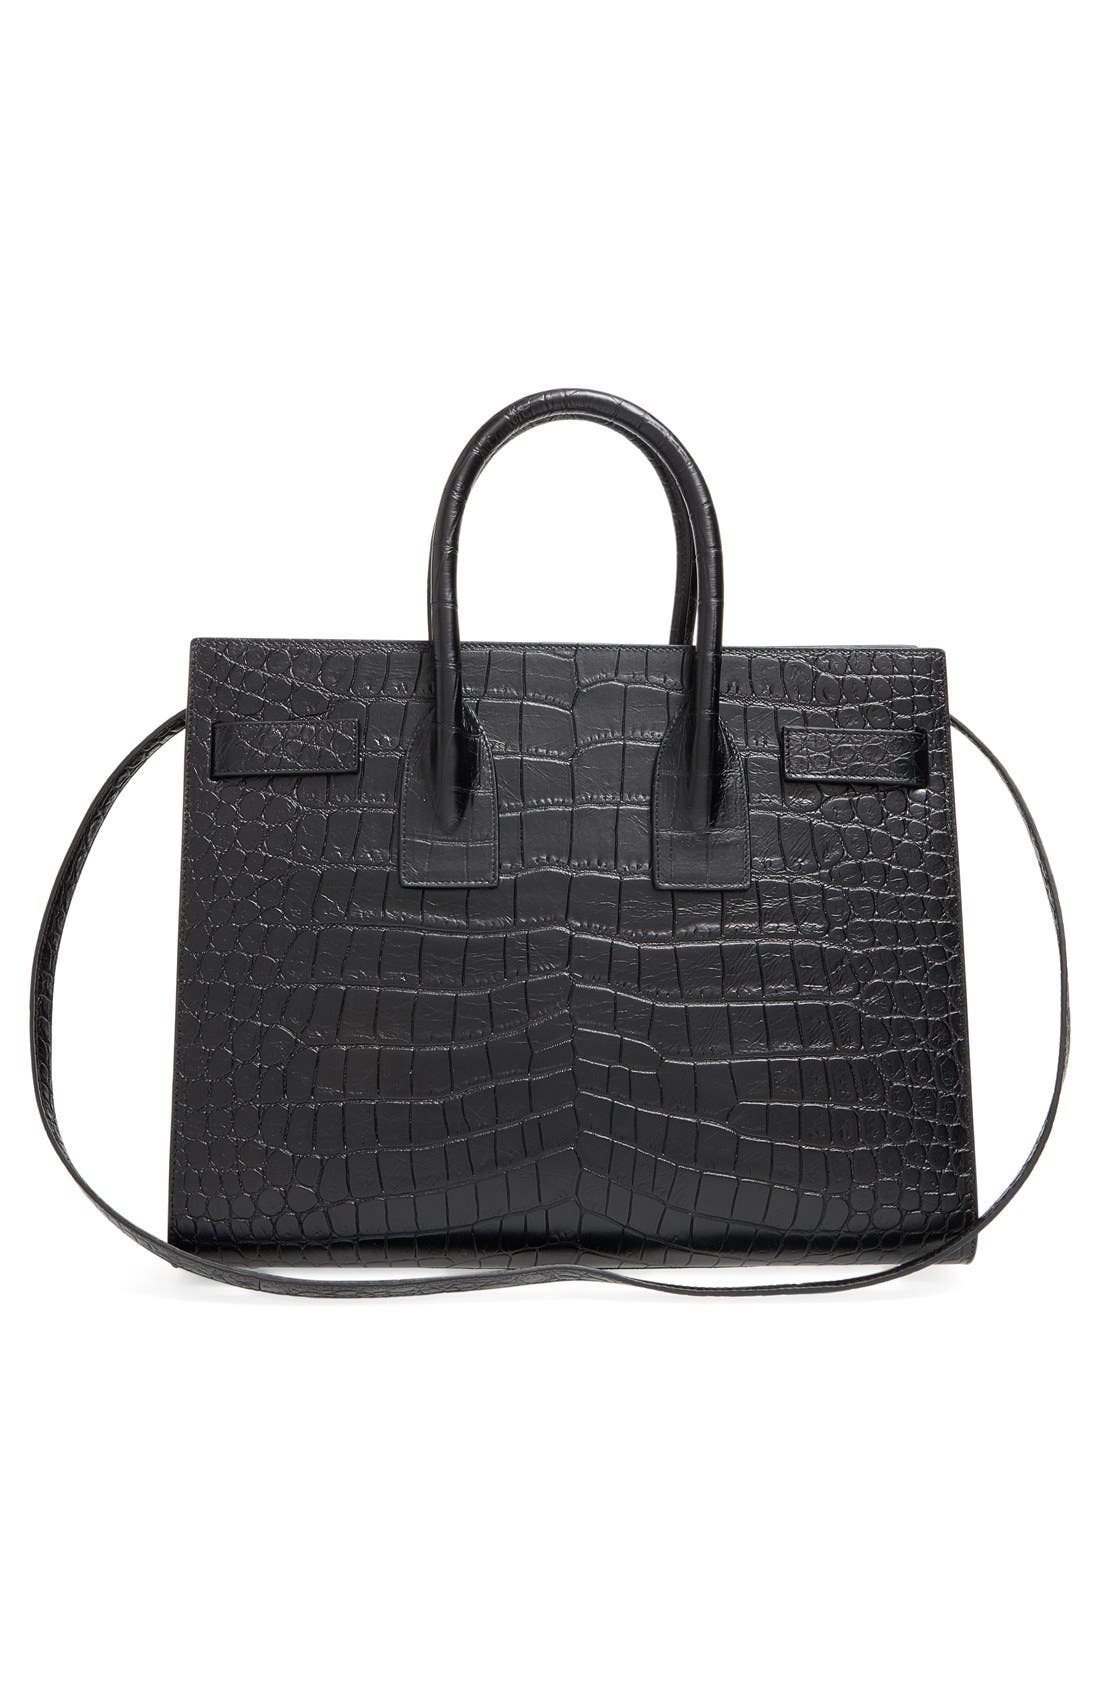 'Small Sac de Jour' Croc Embossed Leather Tote,                             Alternate thumbnail 2, color,                             NOIR